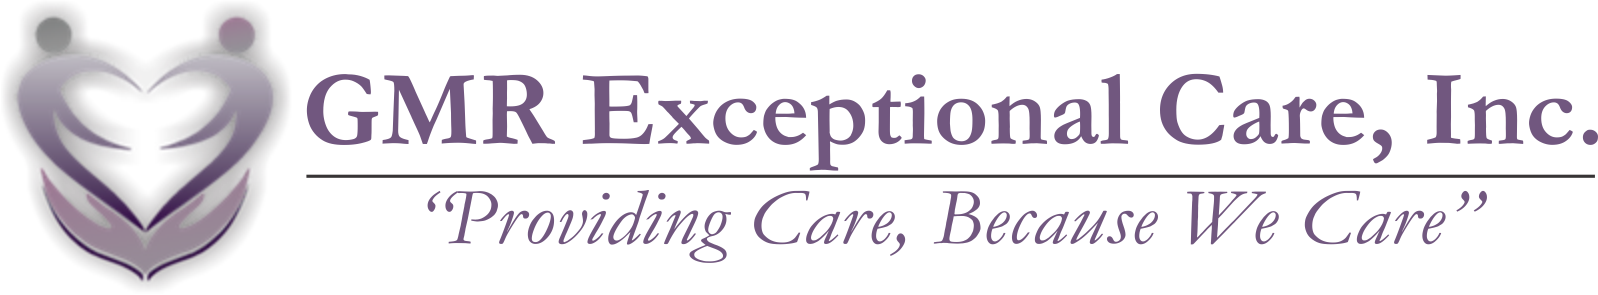 GMR Exceptional Care, Inc